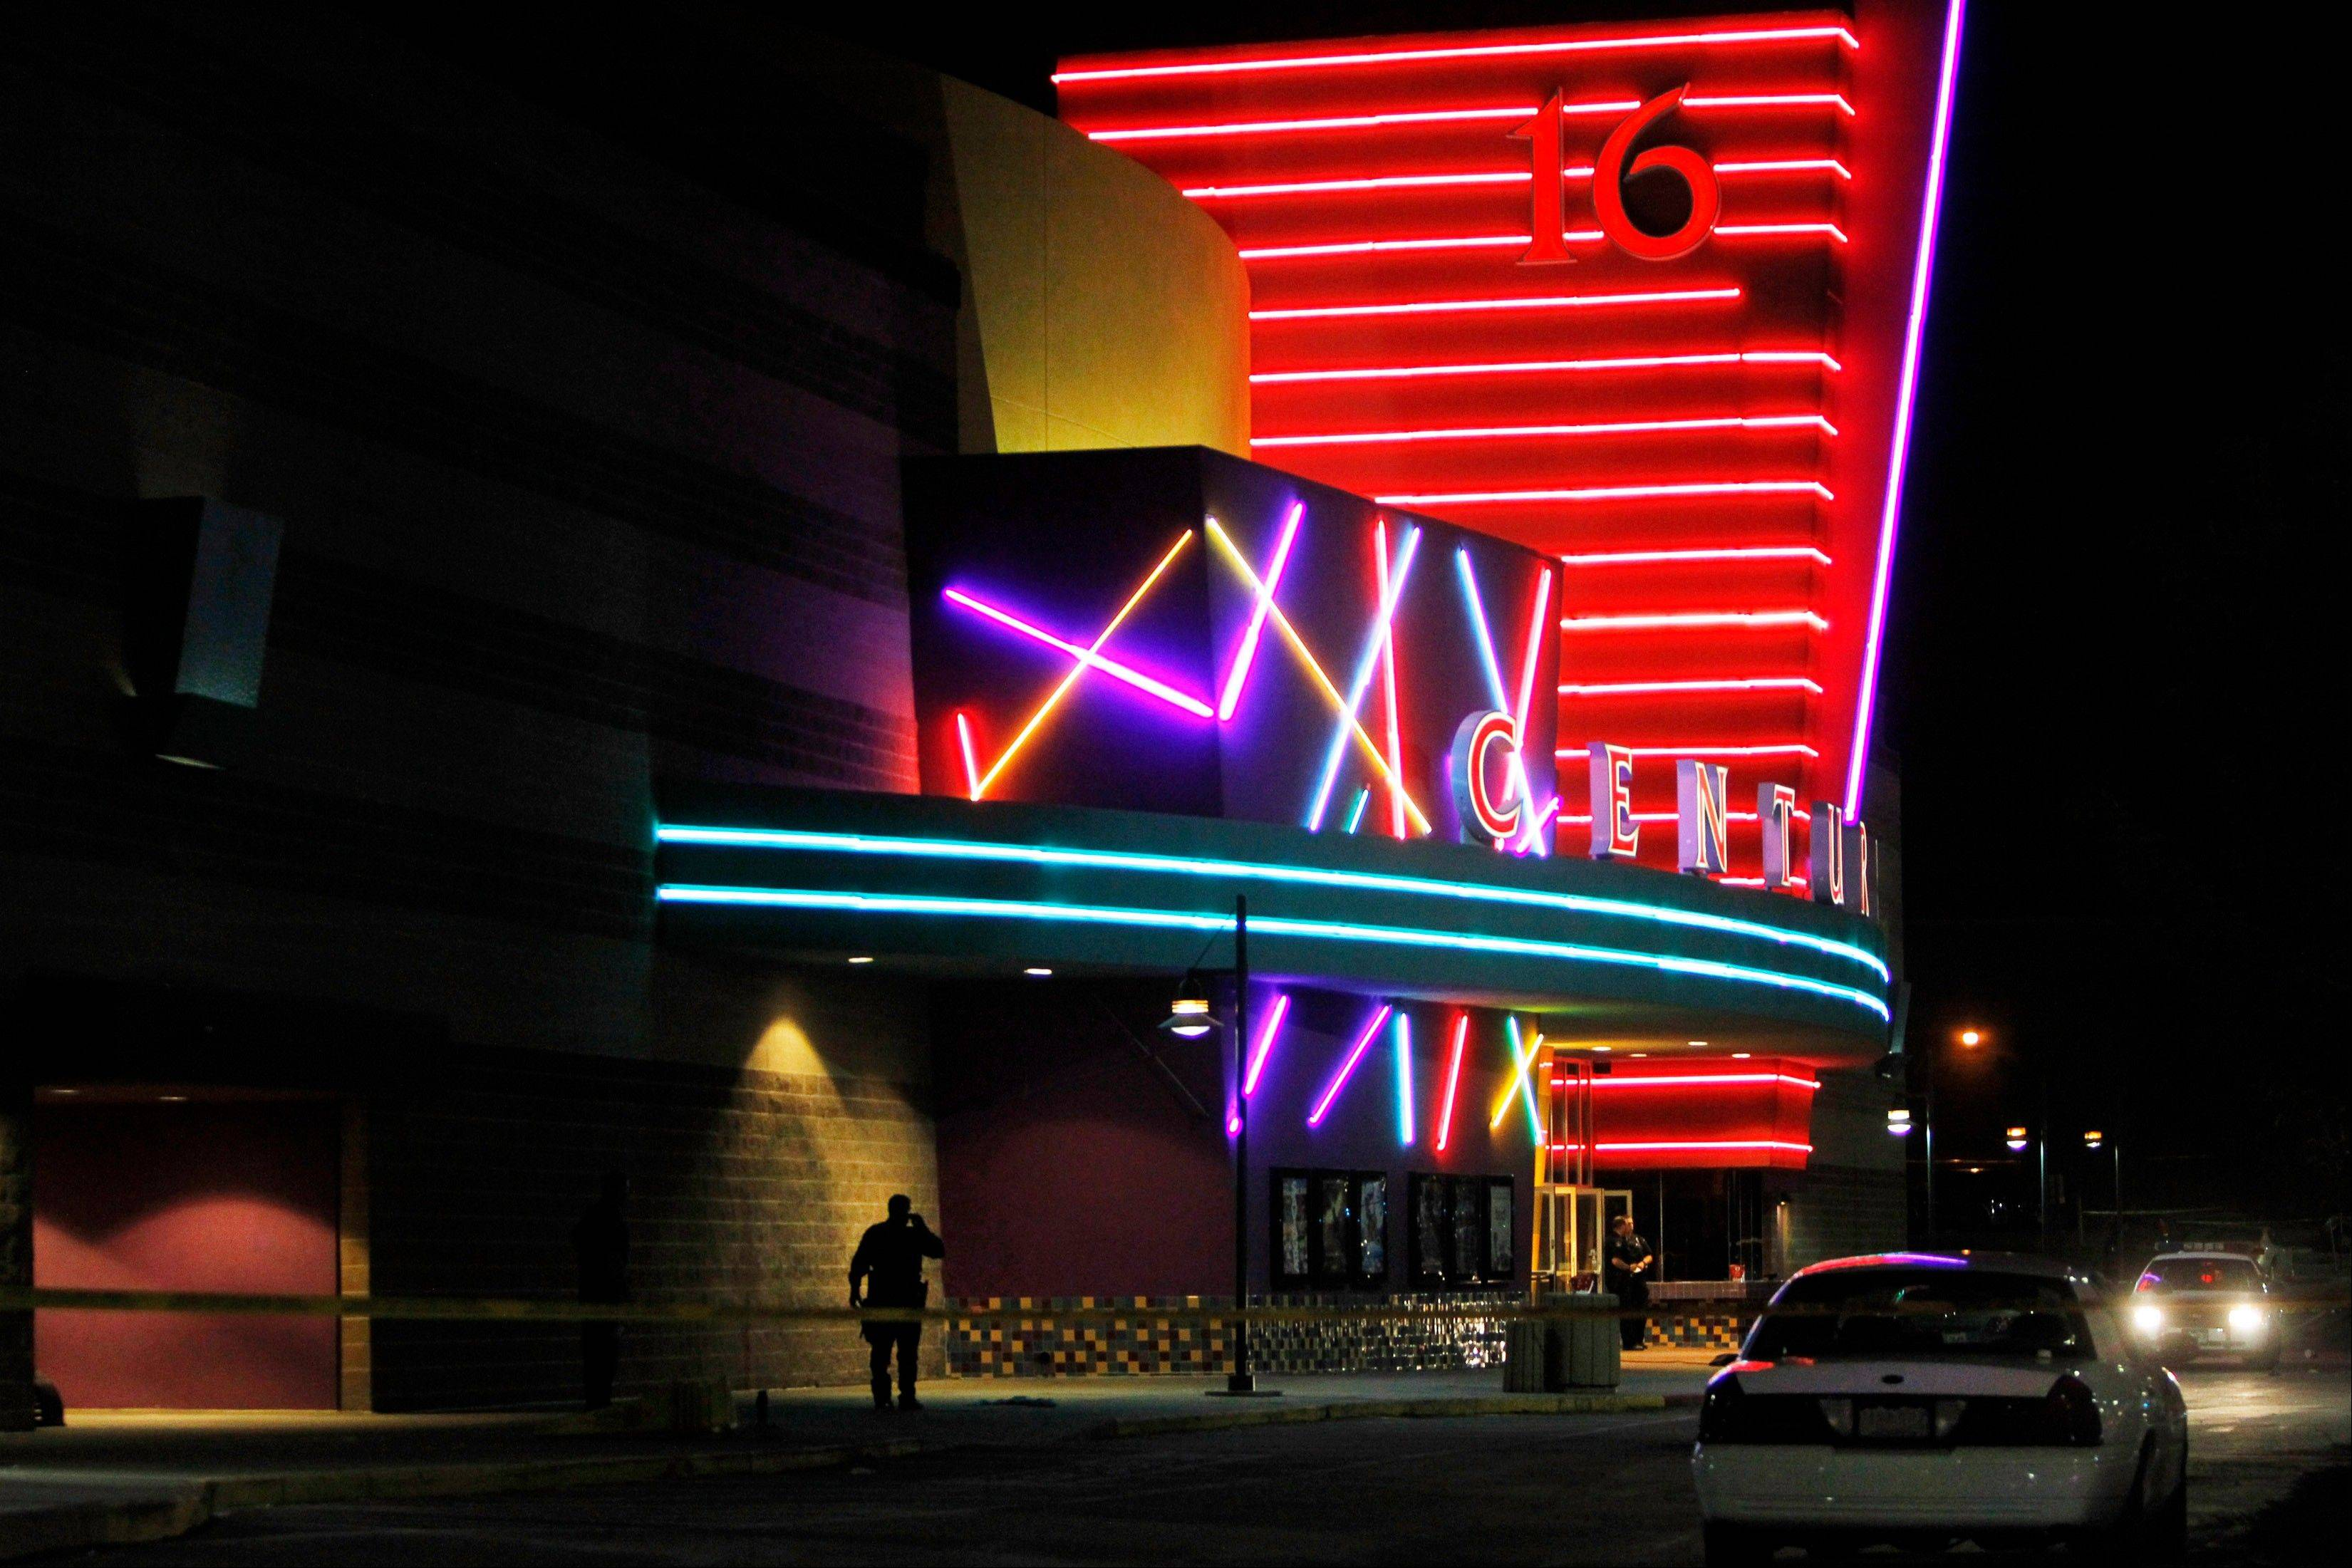 This July 20, 2012 file photo shows police outside of the Century 16 movie theater where suspect James Holmes killed 12 people and wounded 70 during the screening of a Batman movie. Eight months later, Colorado became the only state outside the Democratic Party's coastal bases to pass sweeping gun control laws.